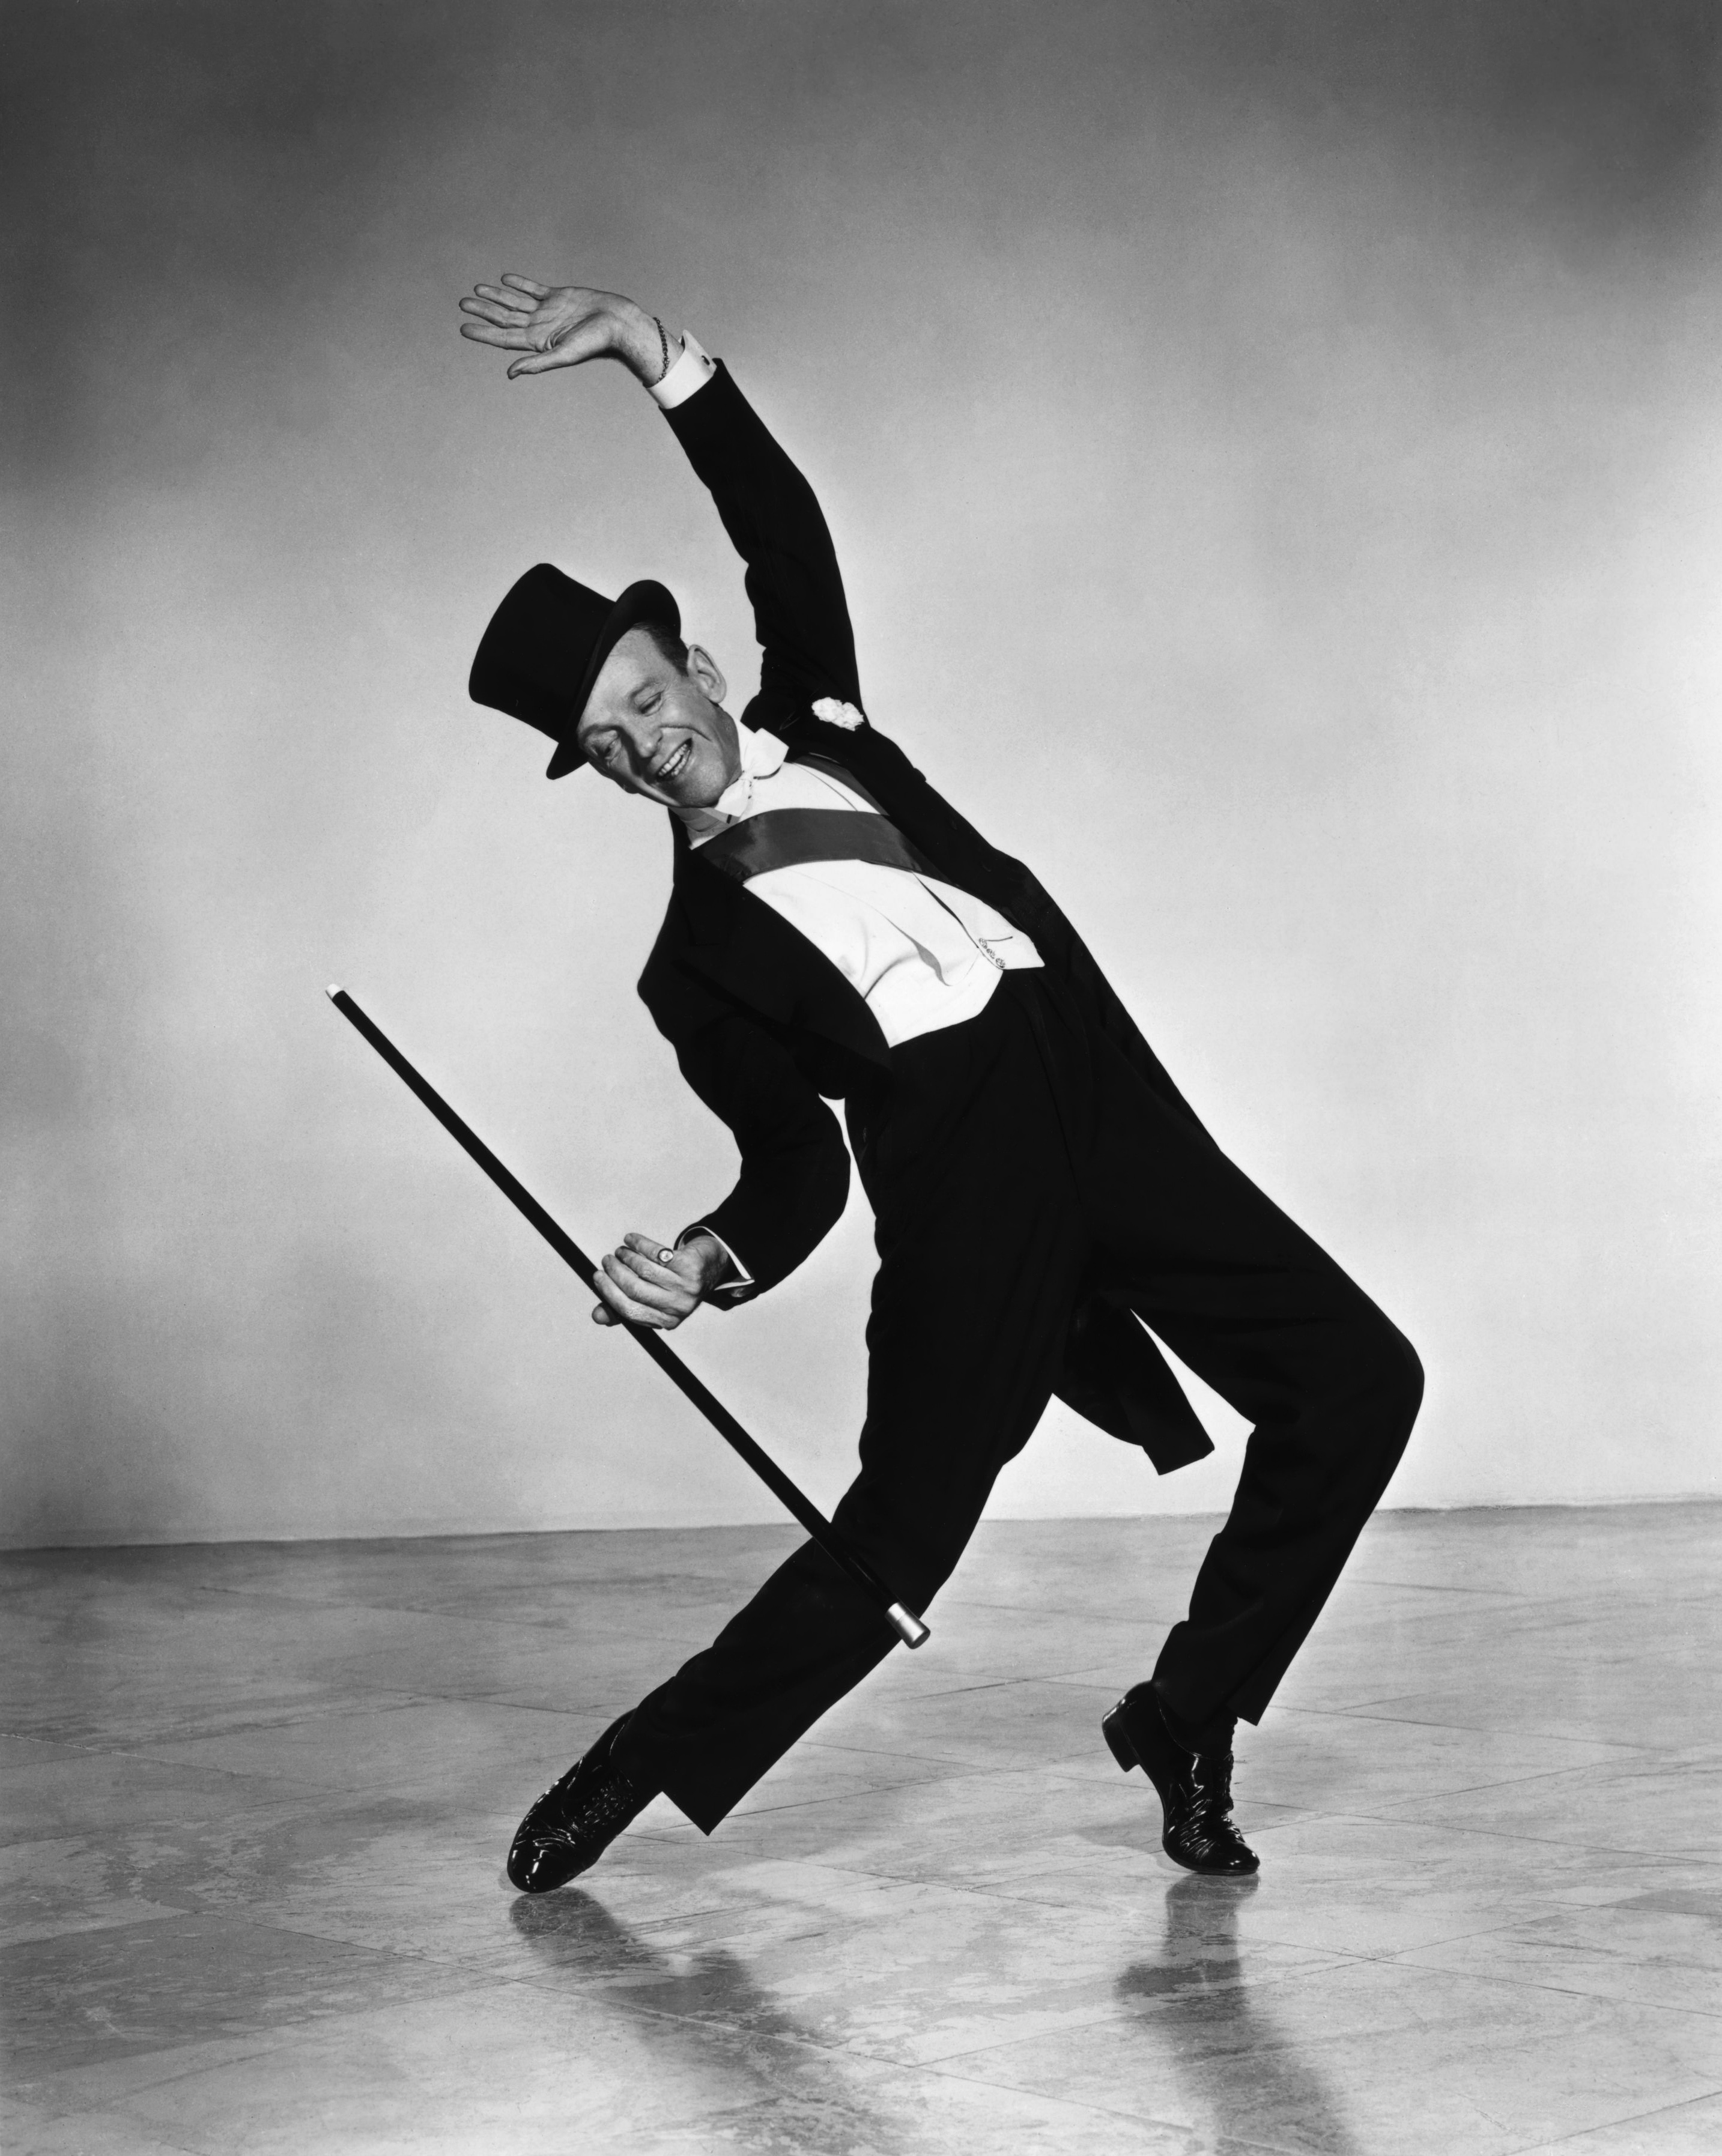 fred astaire i won't dance